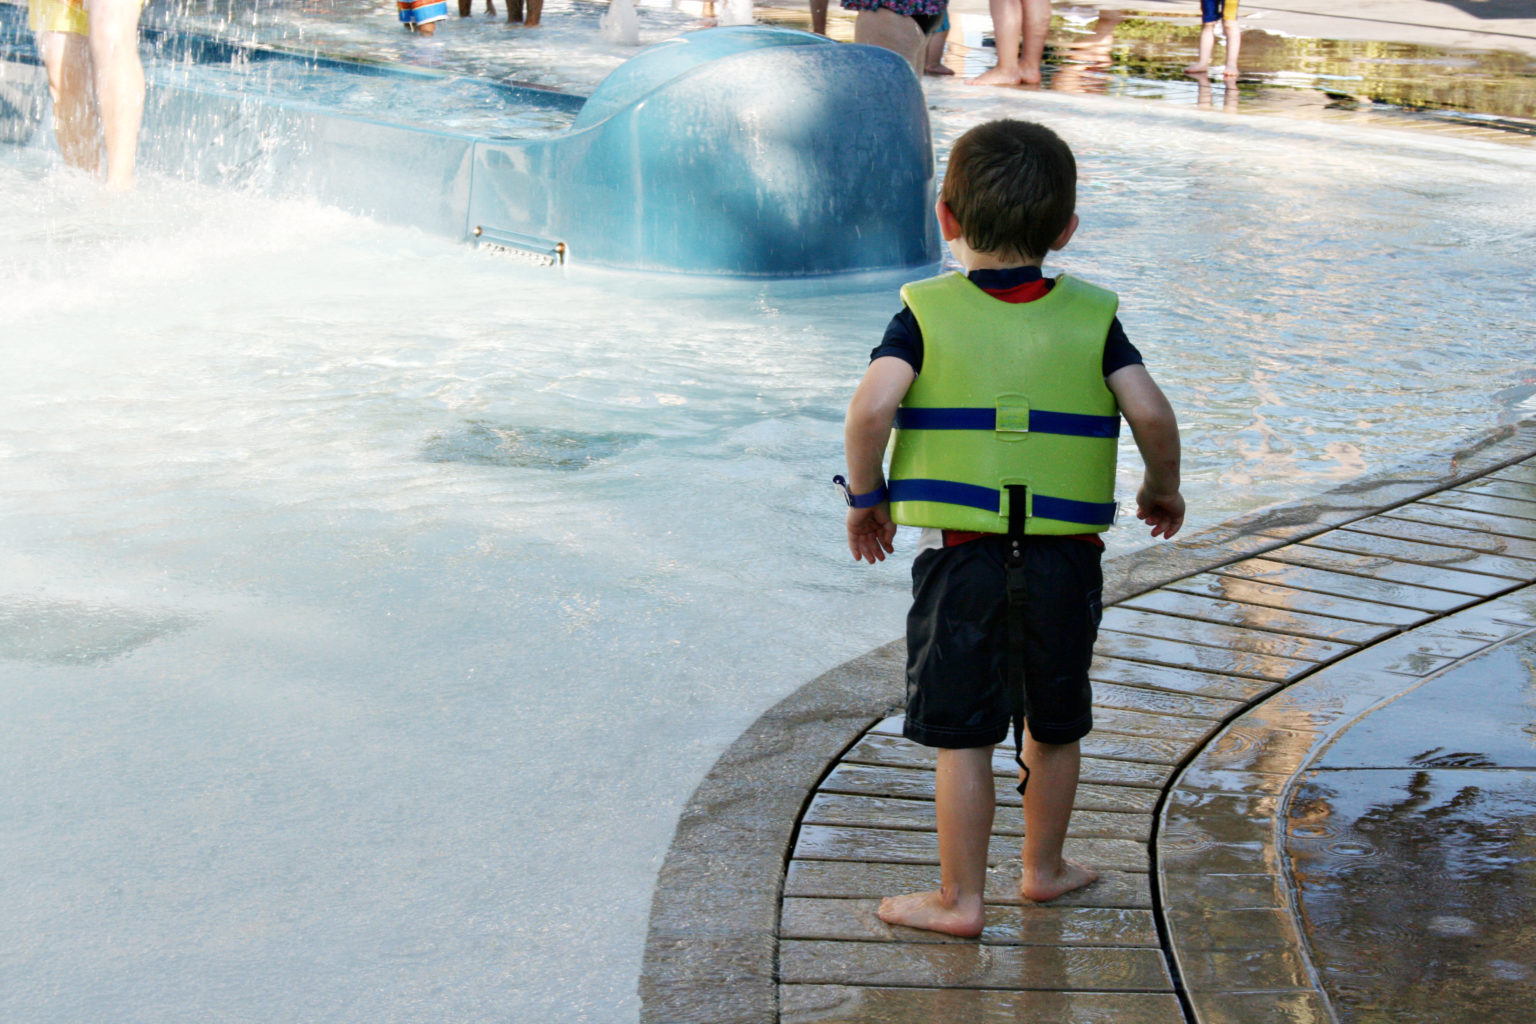 Disneyland Hotel pool life jacket for toddlers